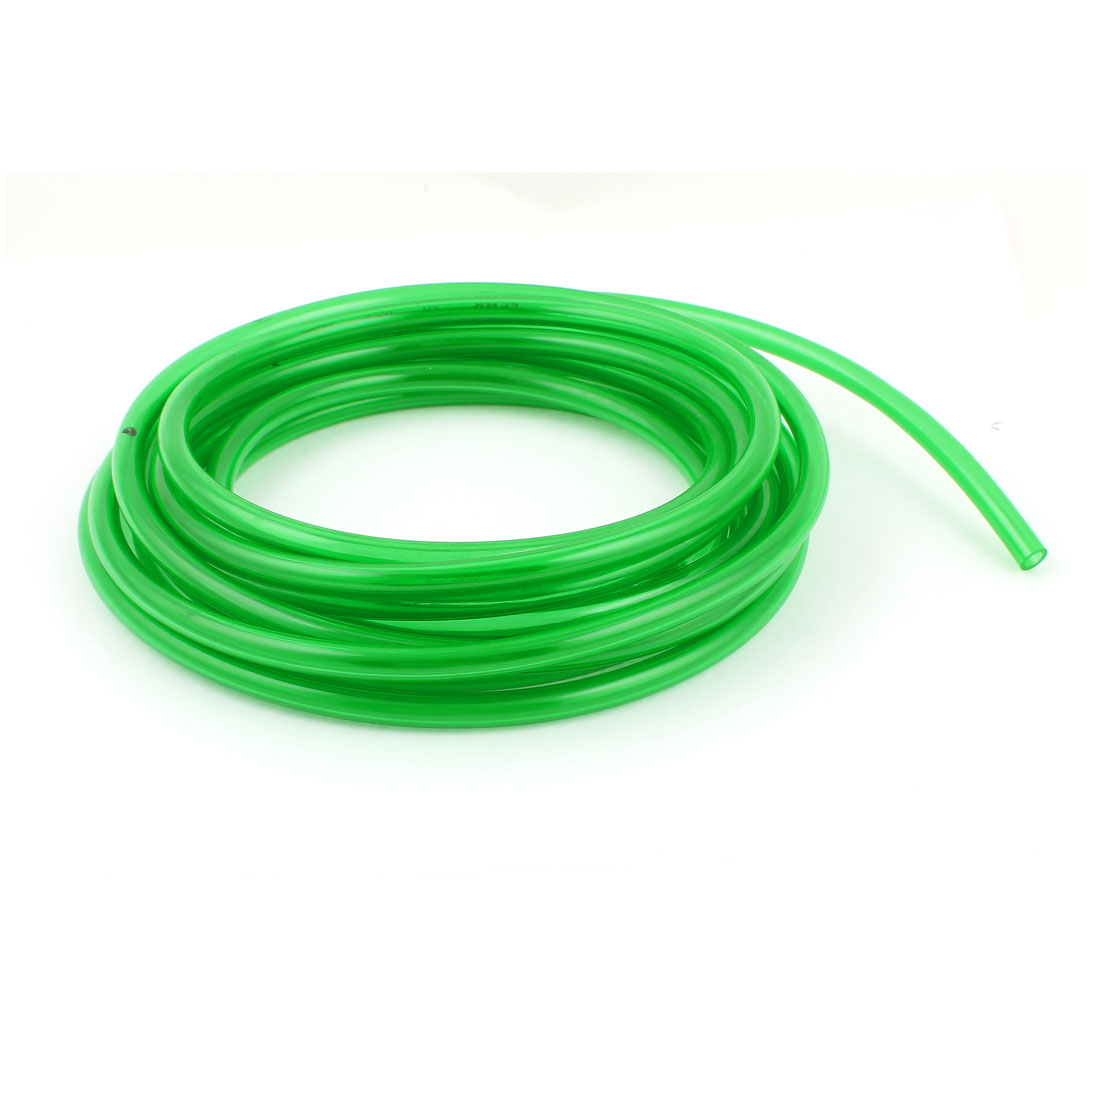 5m 16.4ft 8mmx5mm Pneumatic Polyurethane PU Hose Tube Pipe Clear Green